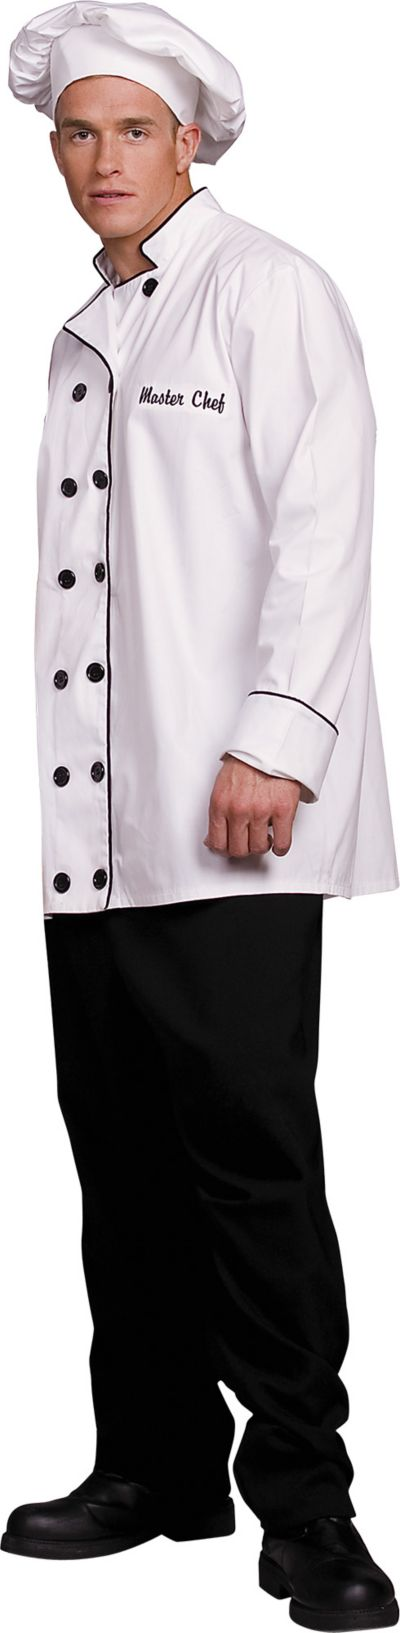 Adult Master Chef Costume